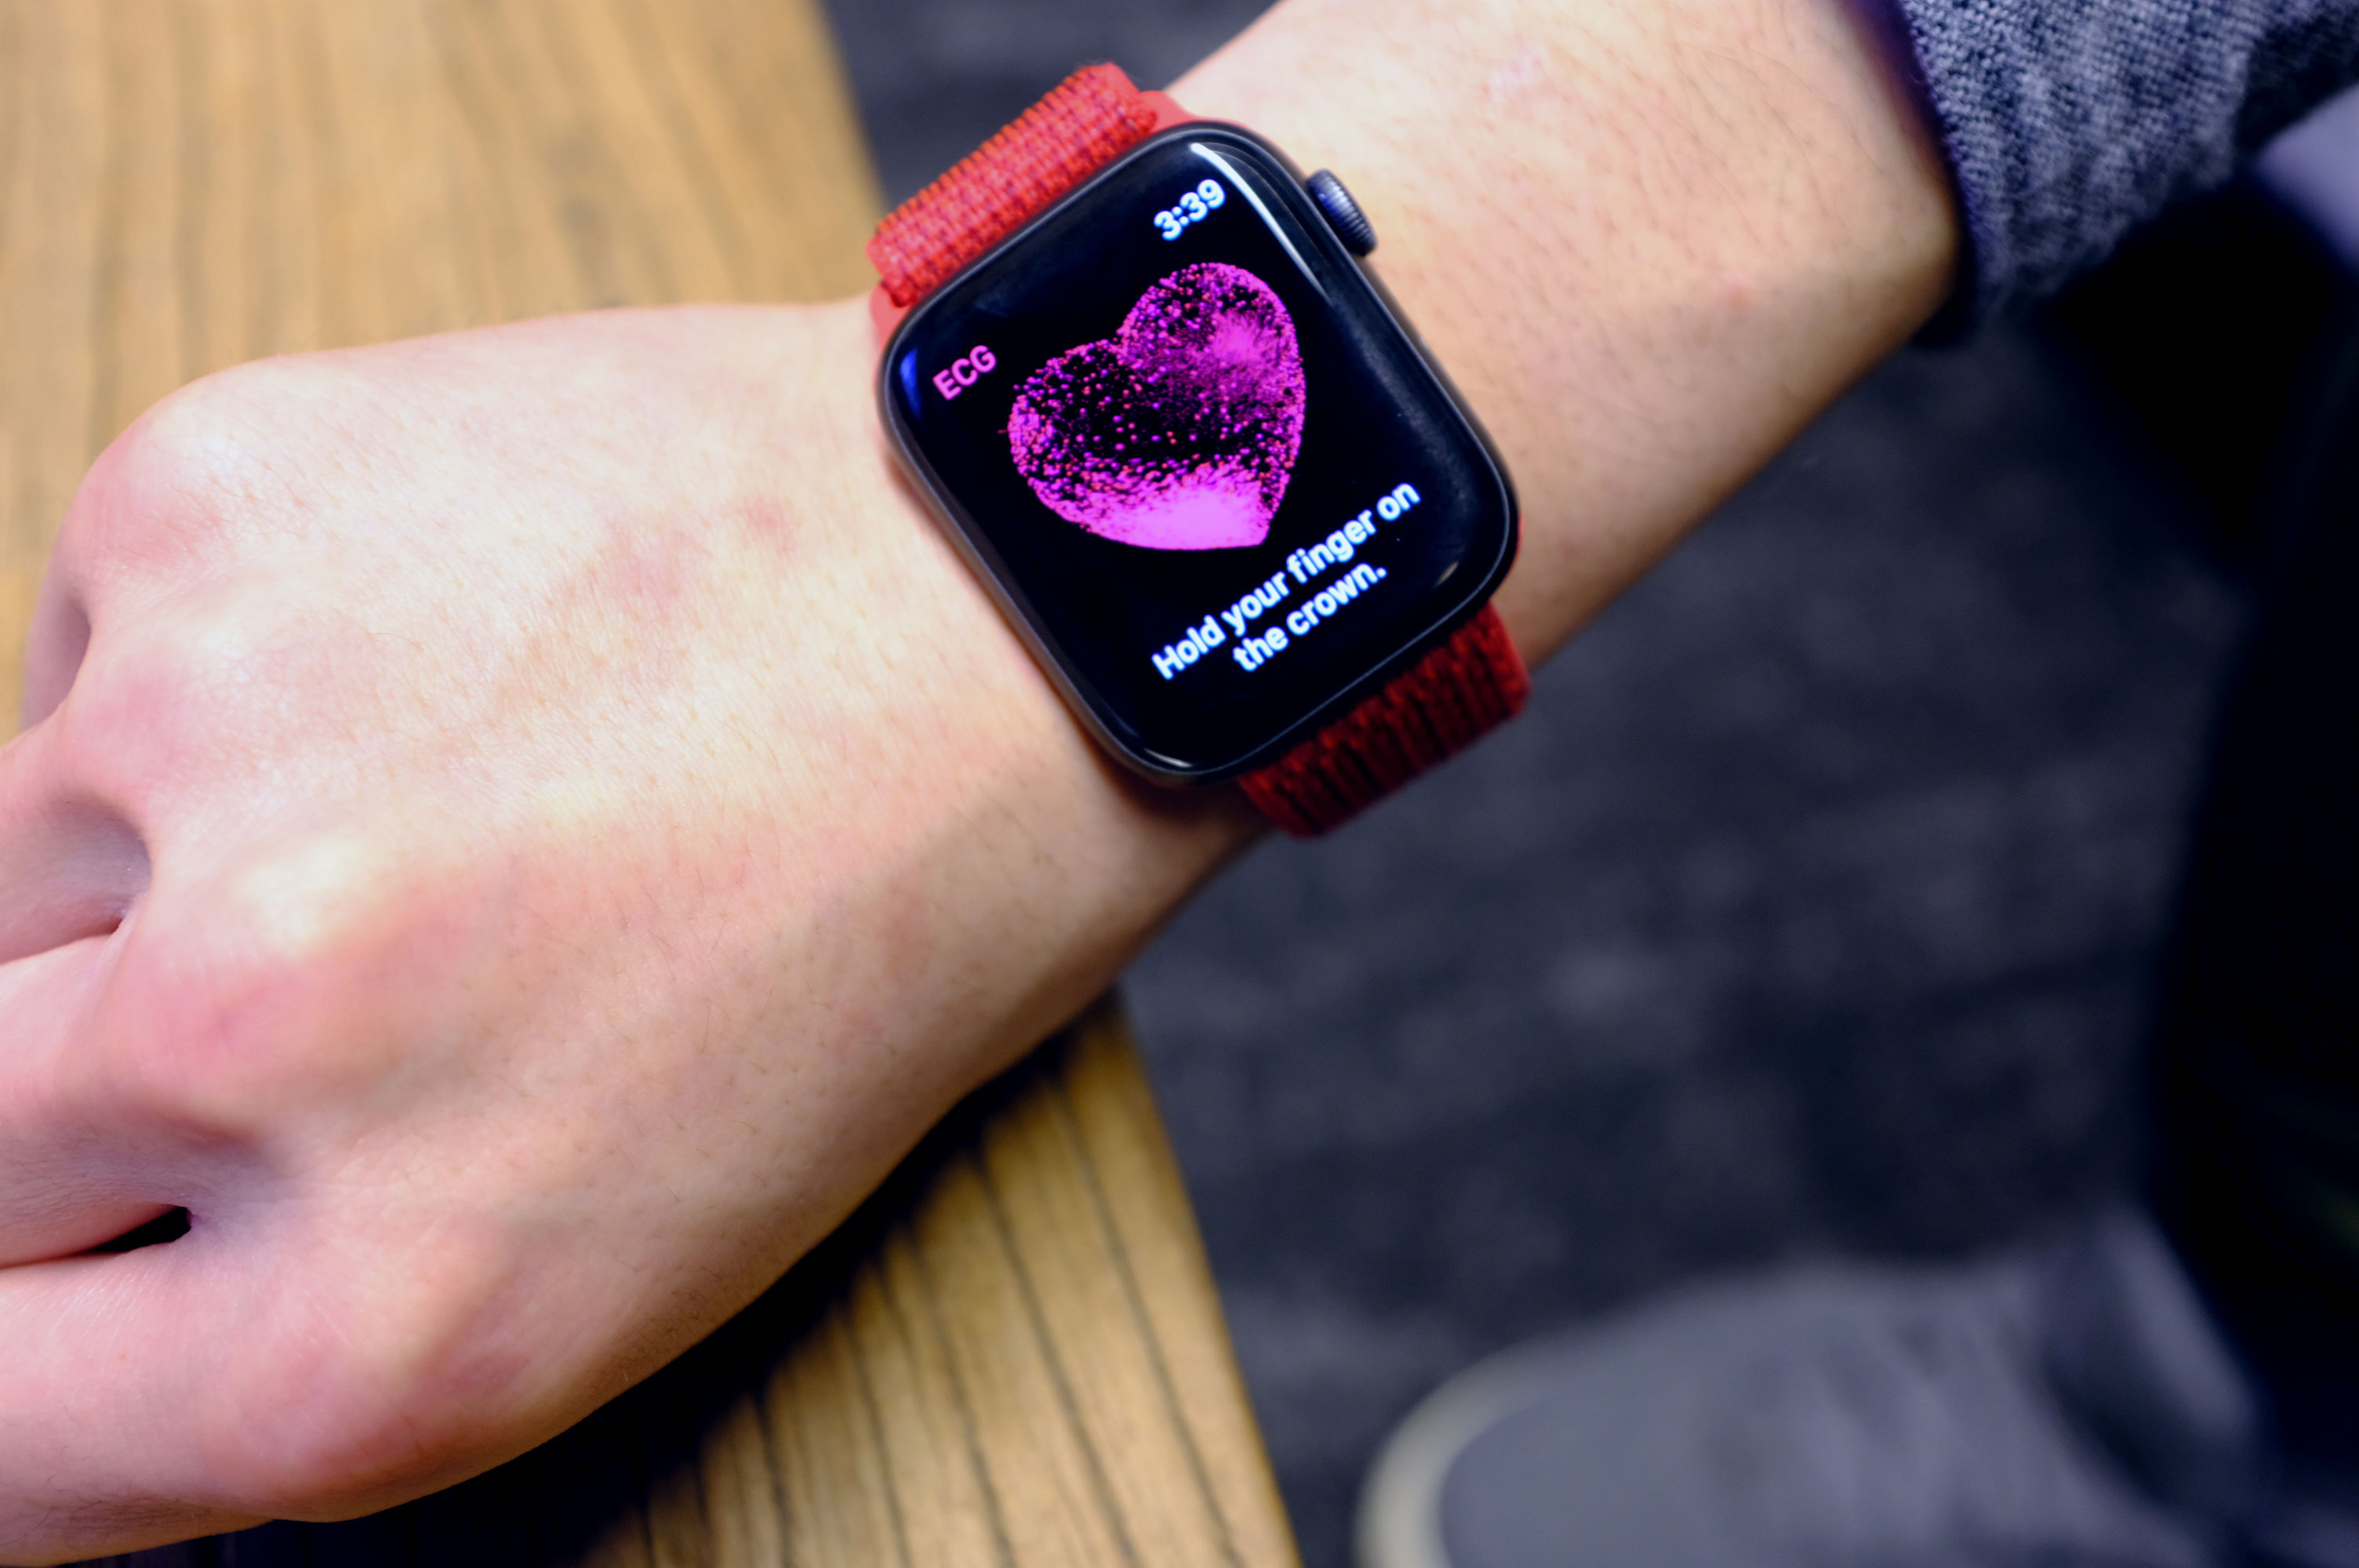 The Apple Look's ECG feature goes live this day